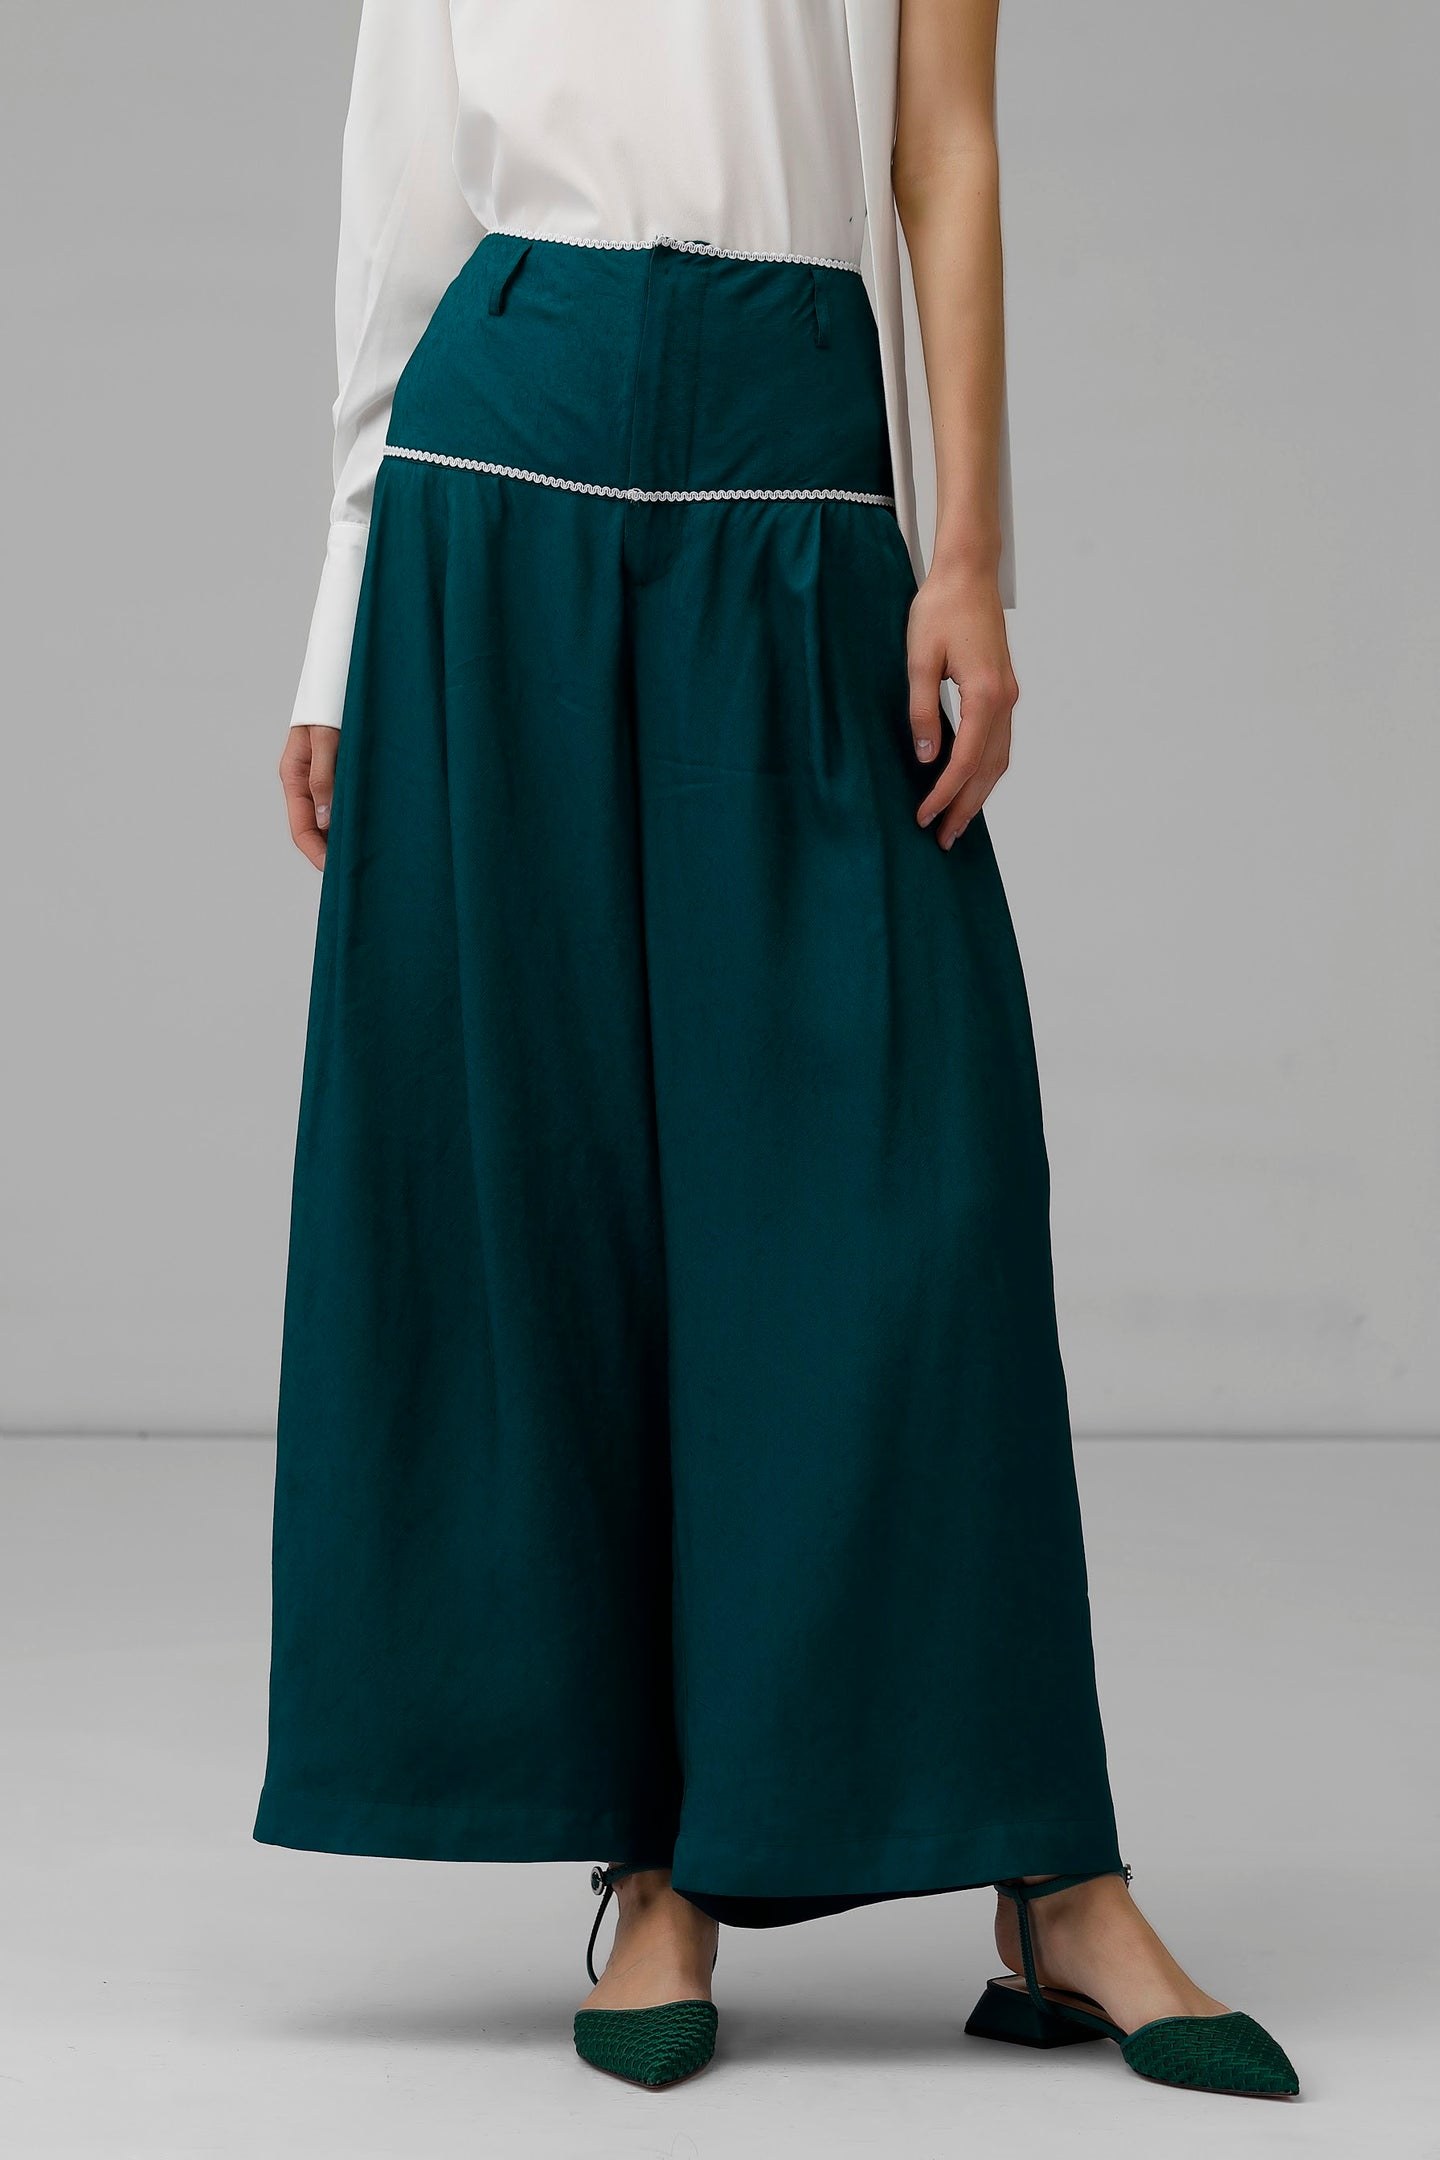 Wide Leg Pant in Teal